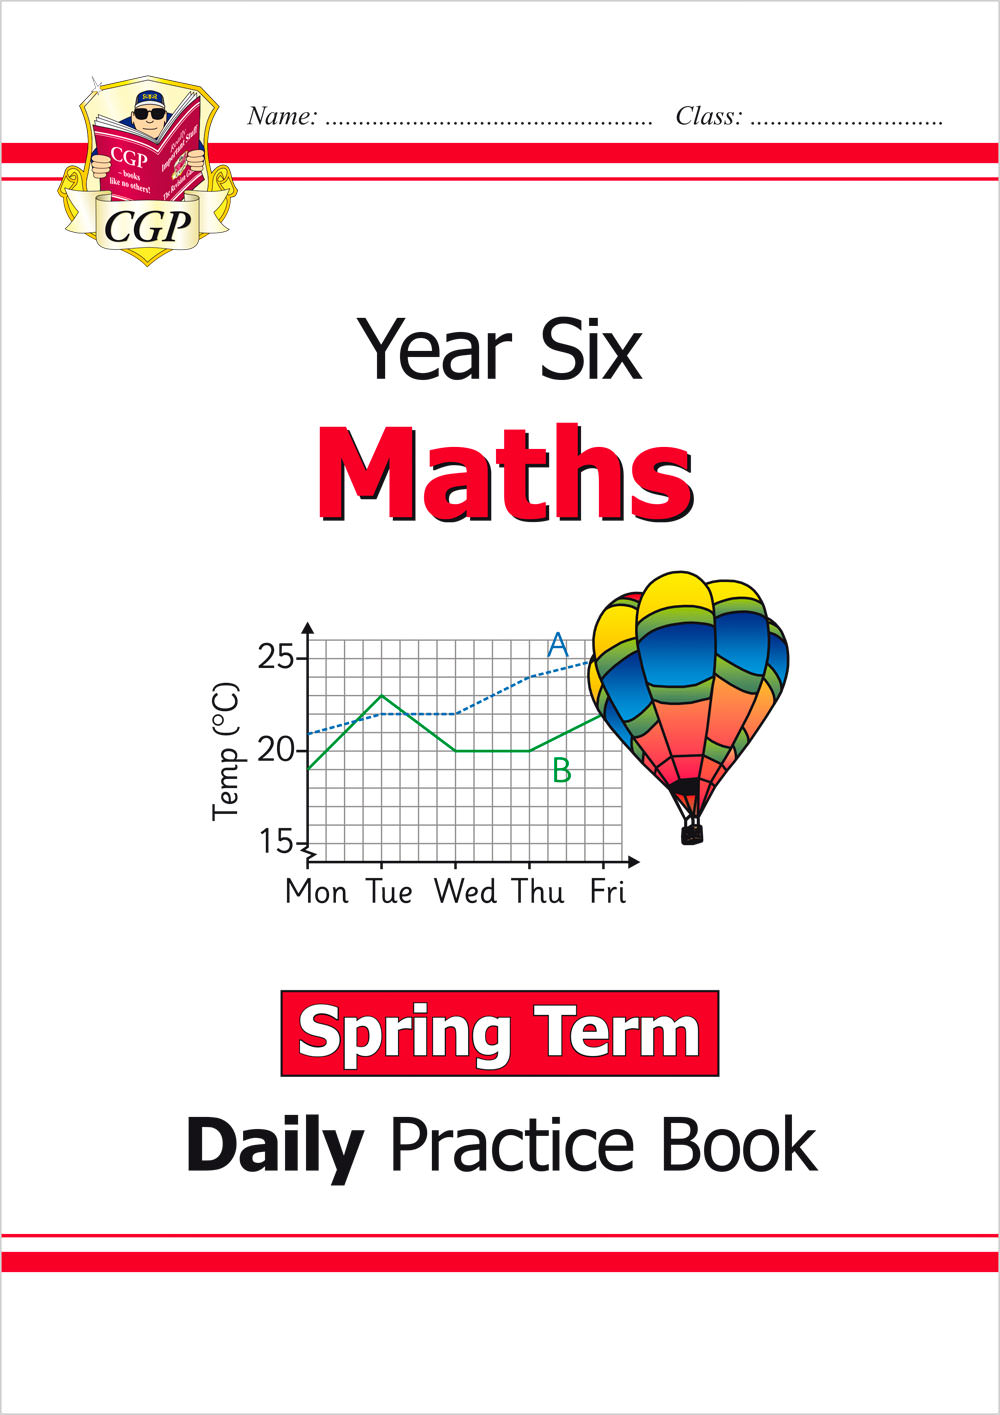 M6WSP21 - New KS2 Maths Daily Practice Book: Year 6 - Spring Term